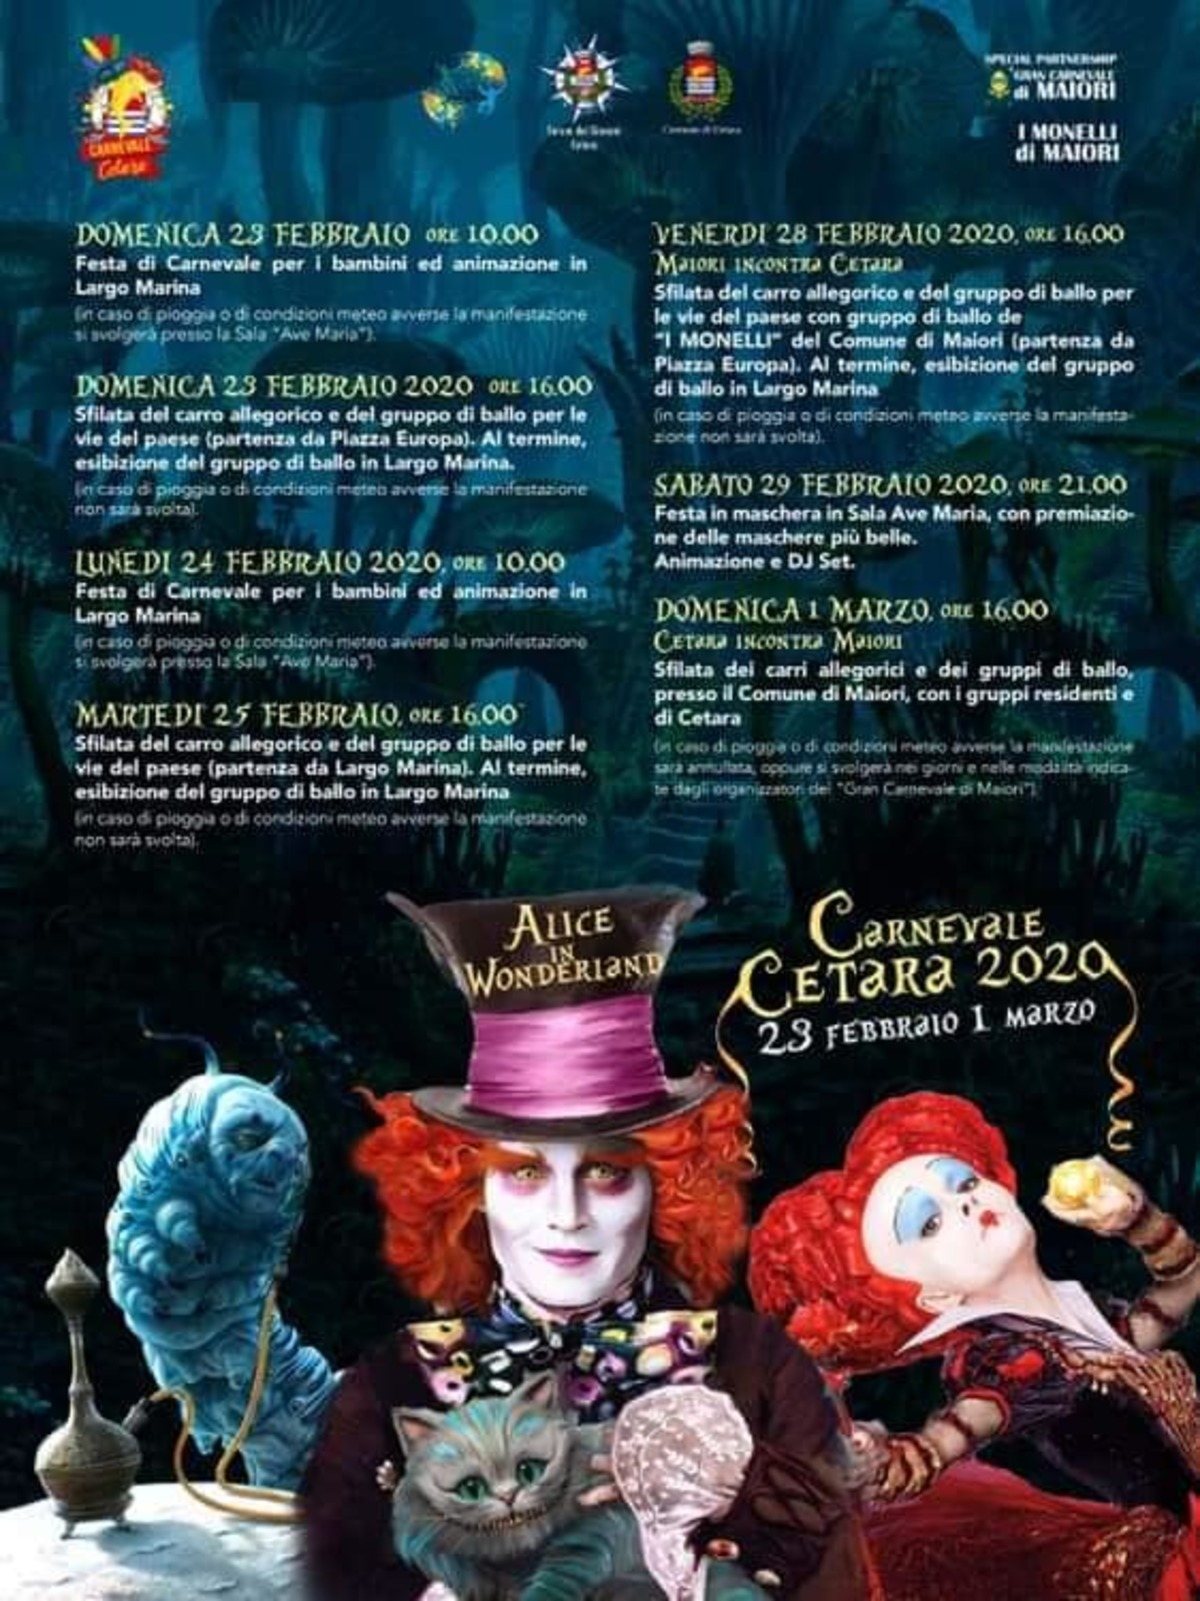 Carnevale Cetara: Alice in Wonderland